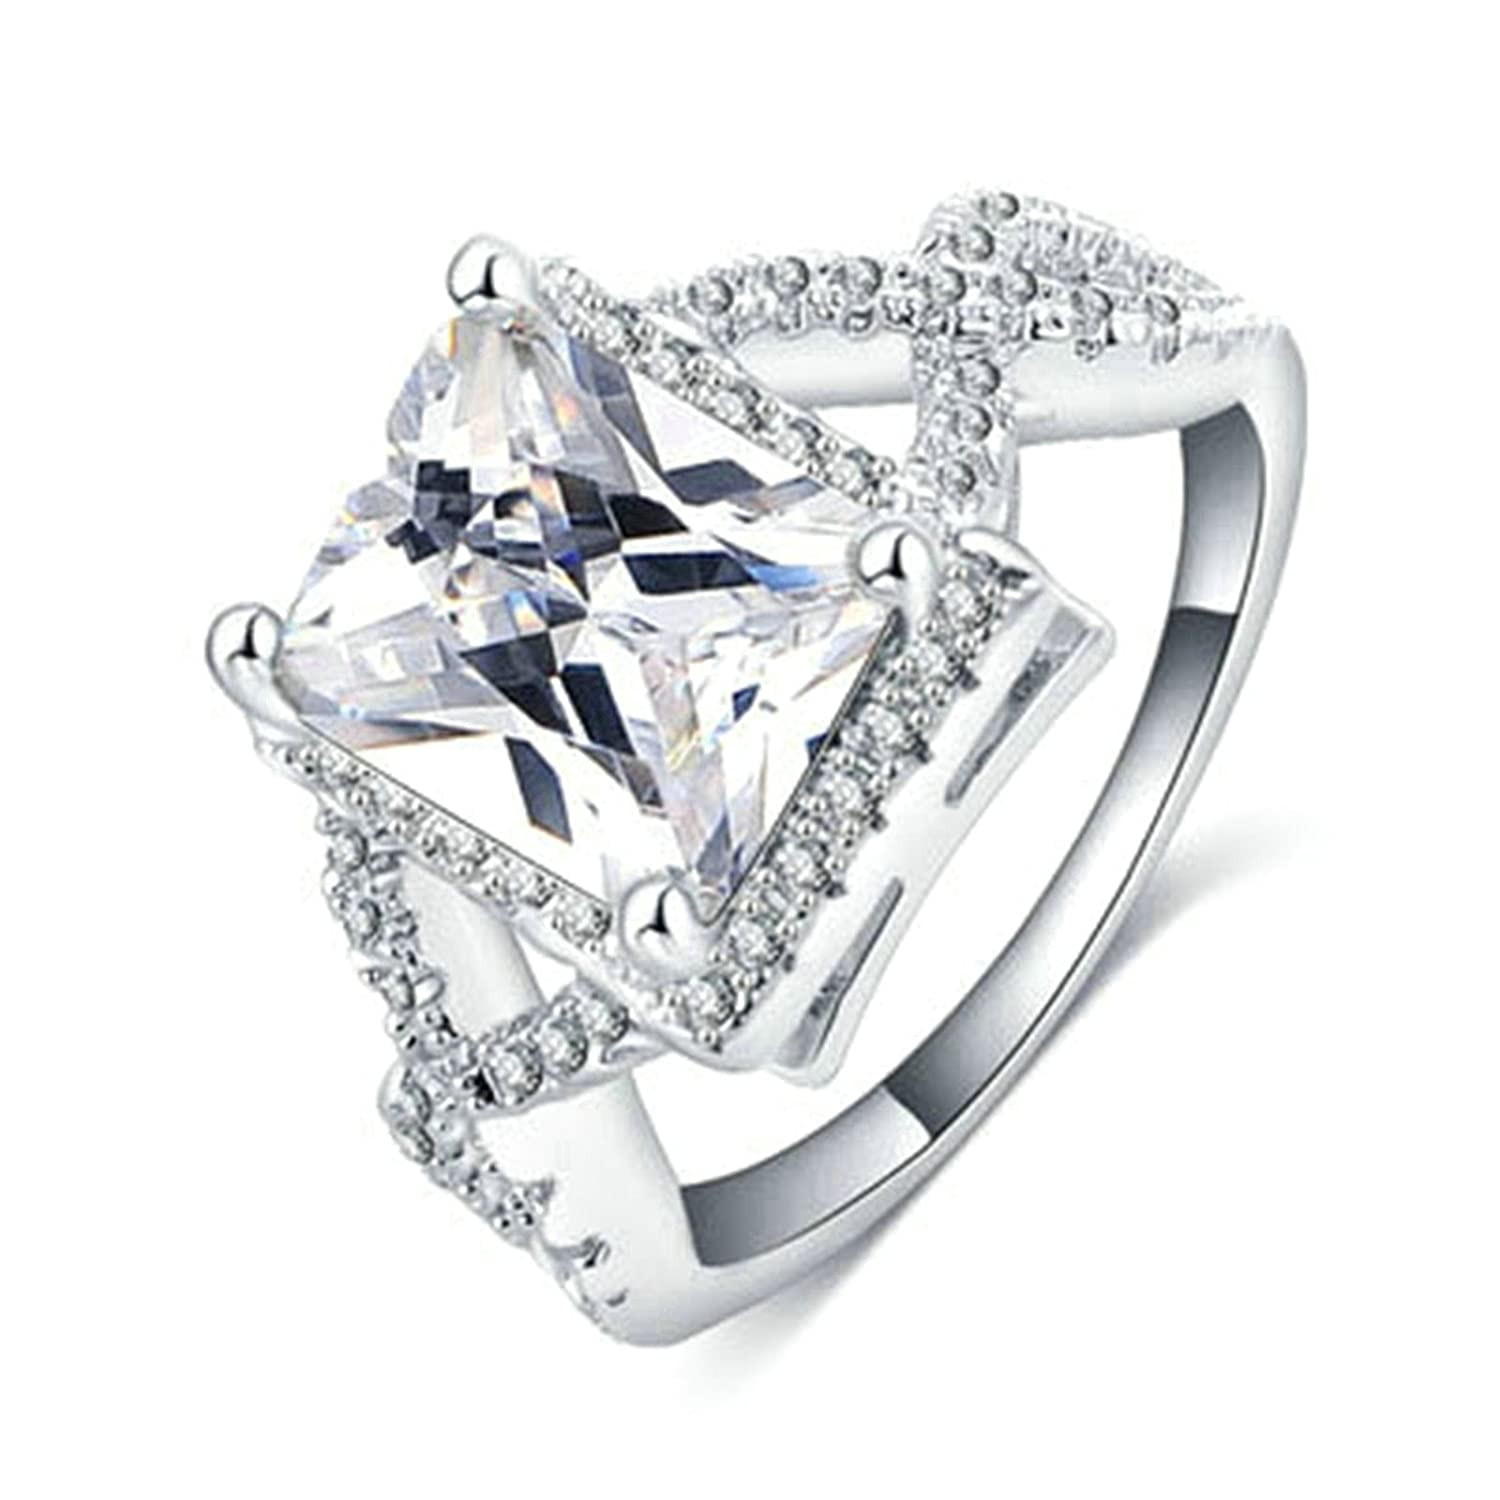 Gnoze His or Her Stainless Steel Solitaire Cubic Zirconia Heart Engraved Wedding Rings Size 8